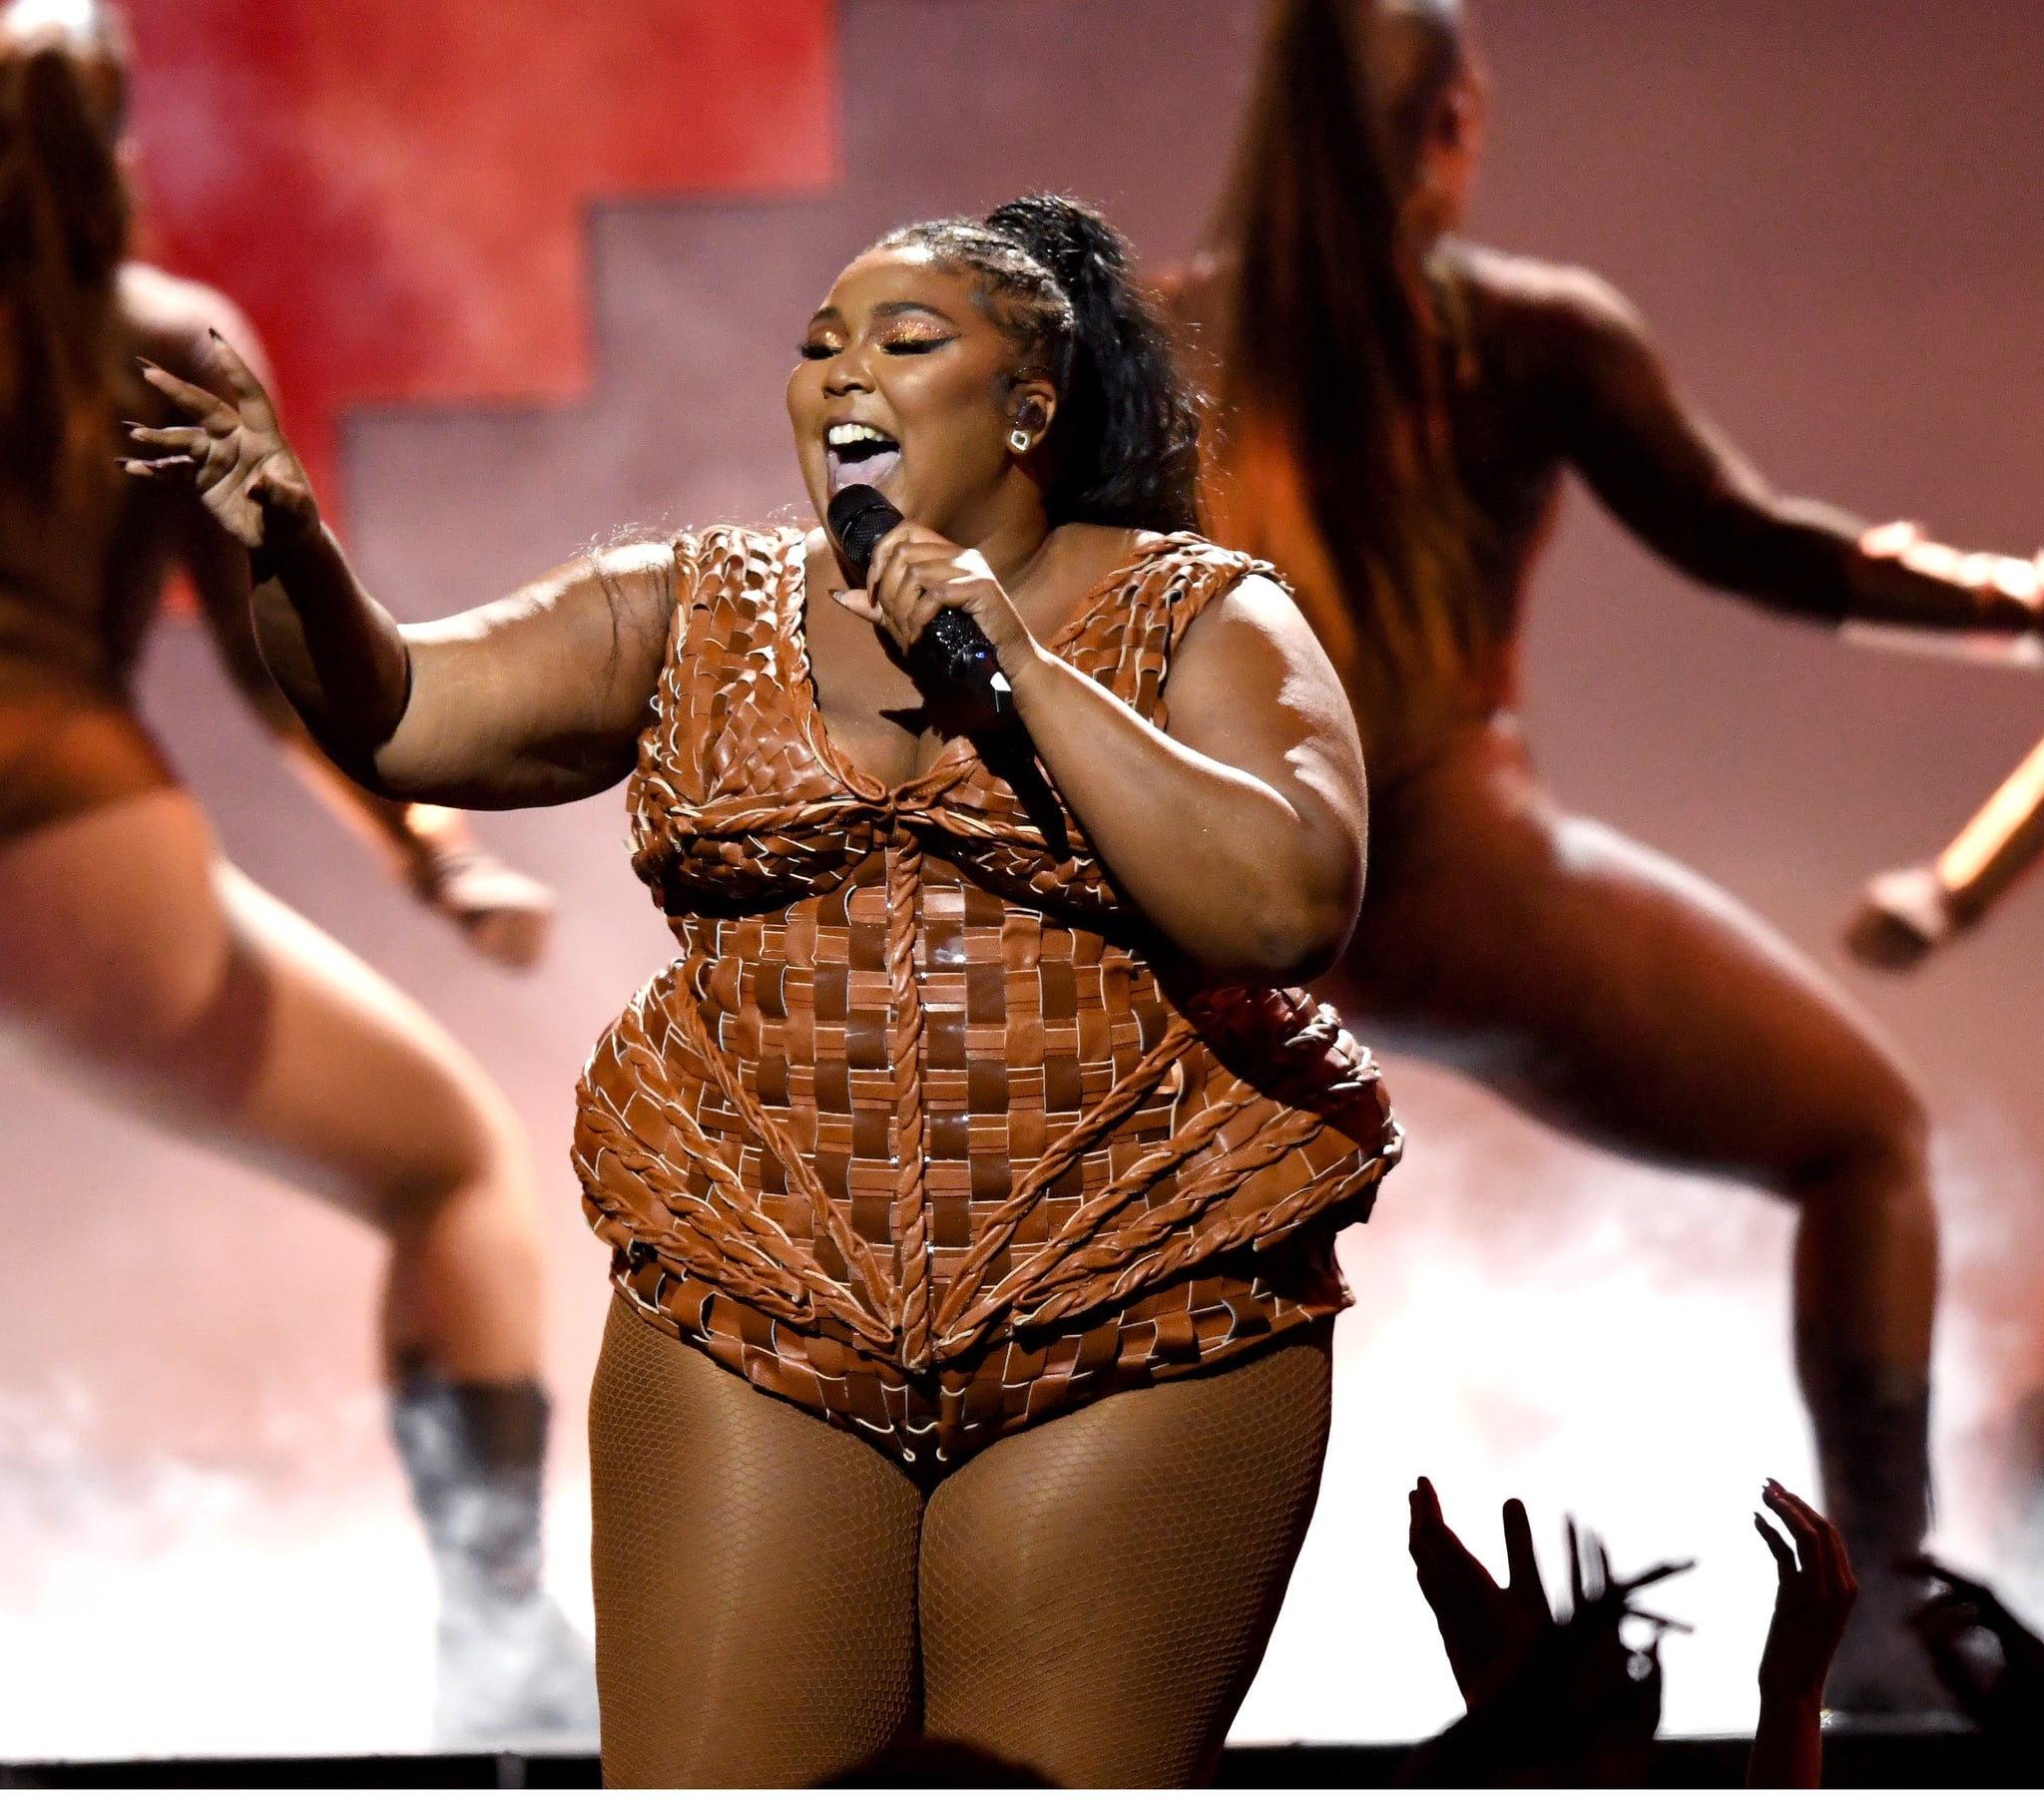 LONDON, ENGLAND - FEBRUARY 18: (EDITORIAL USE ONLY) Lizzo performs during The BRIT Awards 2020 at The O2 Arena on February 18, 2020 in London, England. (Photo by Karwai Tang/WireImage)